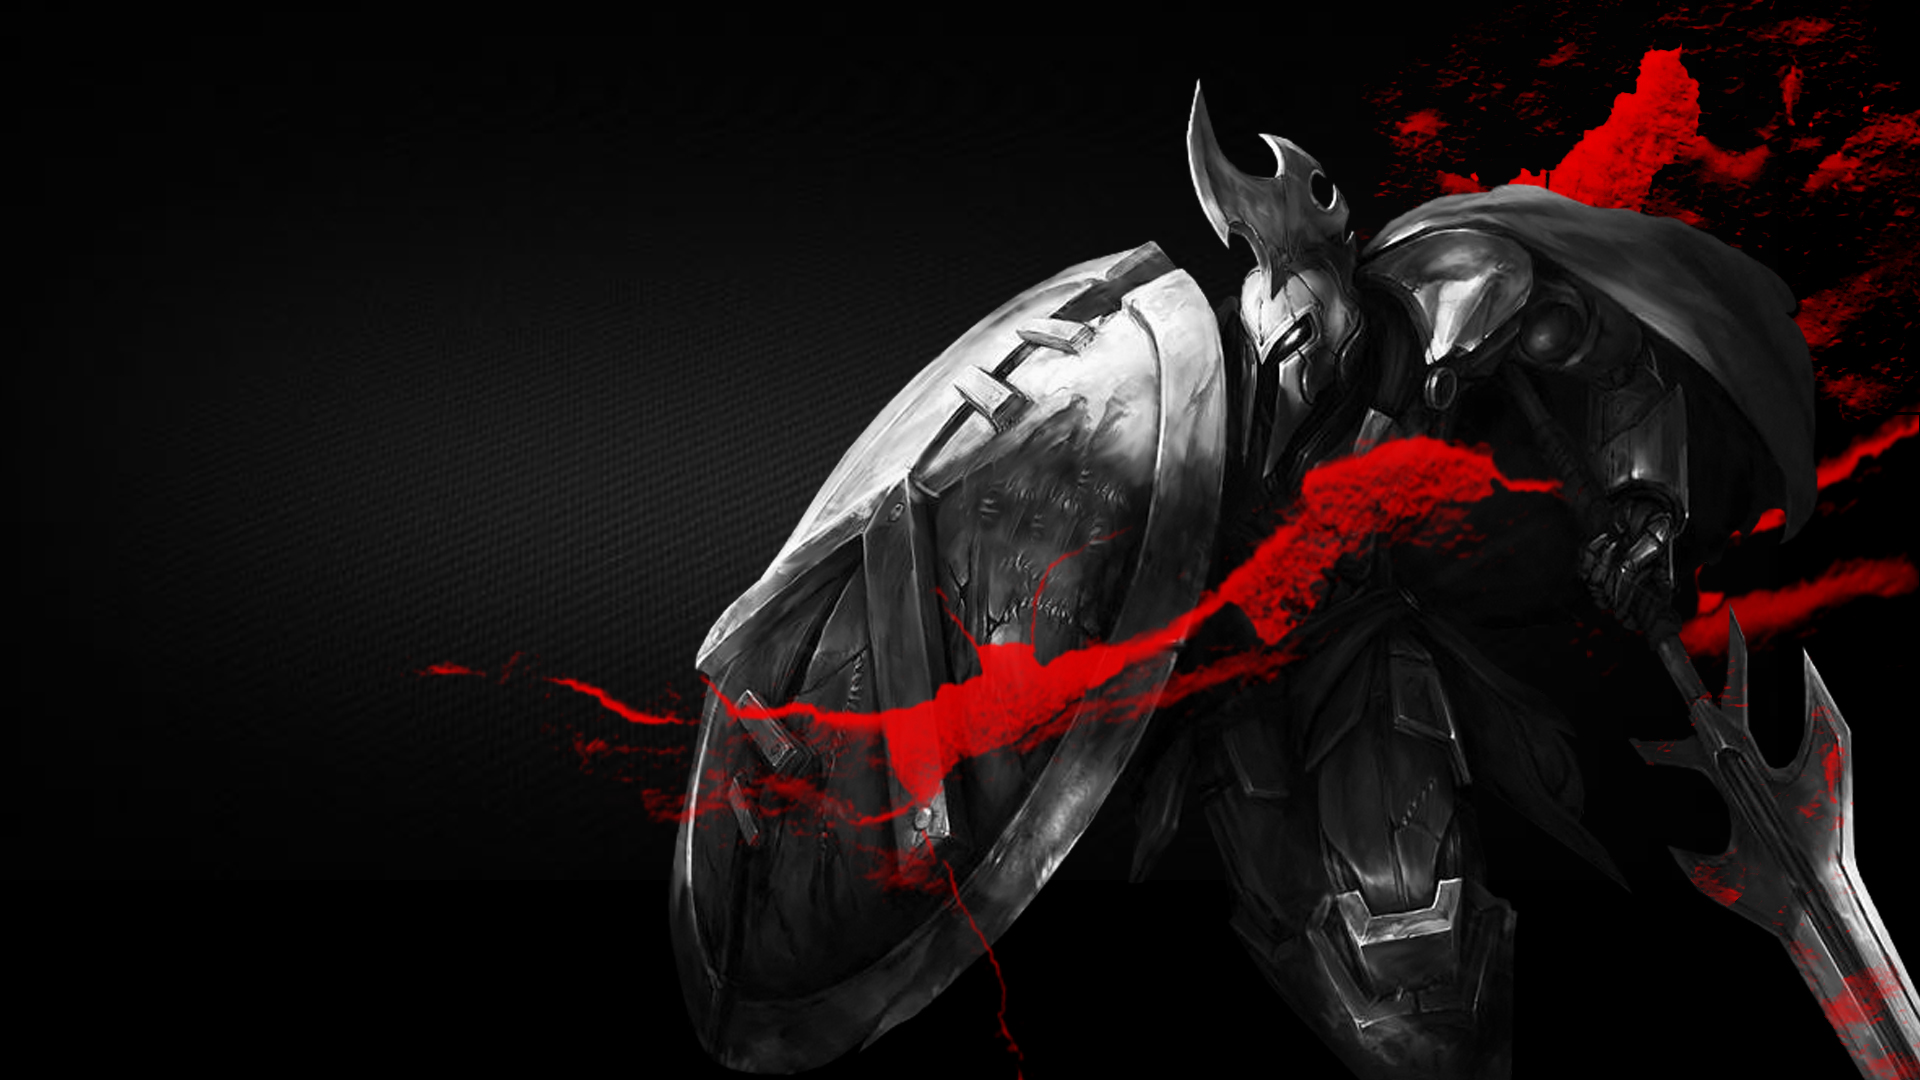 league of legends Computer Wallpapers, Desktop Backgrounds 1920x1080